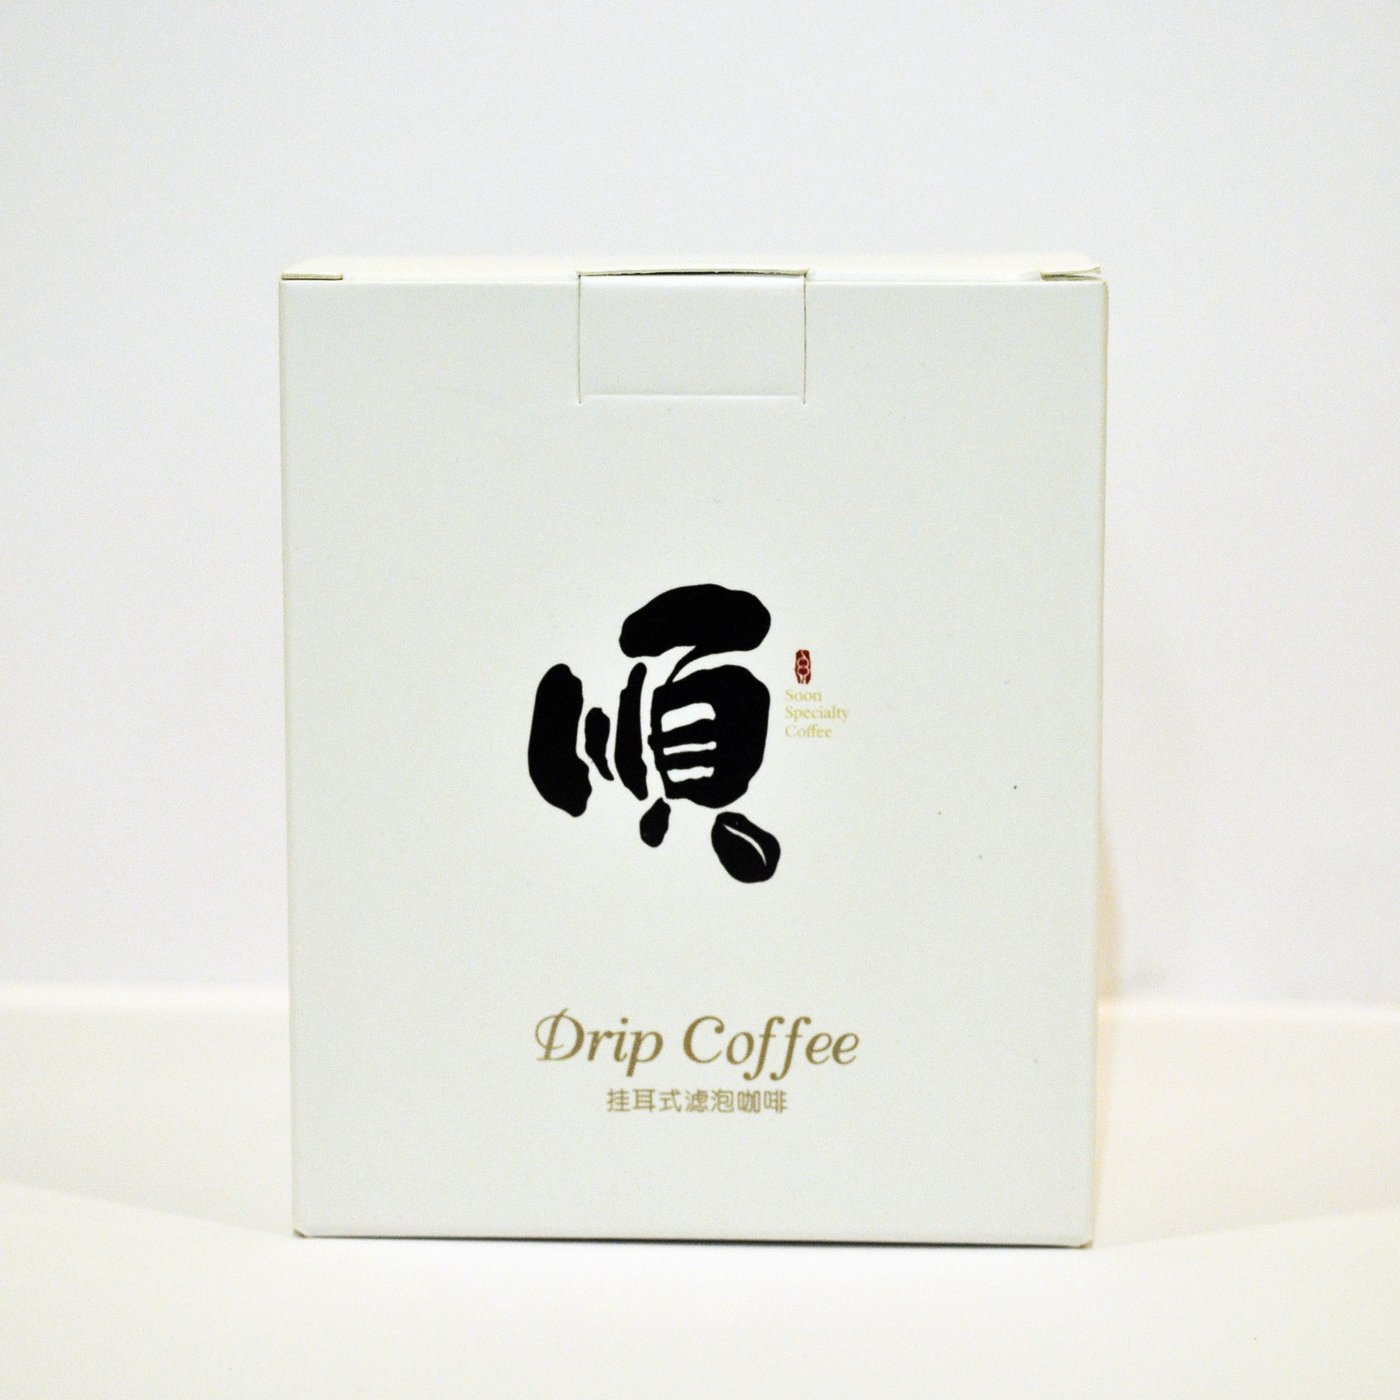 Drip Coffee Box (with 10 Single-Serve Packs) - Brazil Santos - Soon Specialty Coffee - Malaysia First Direct Fire Coffee Roaster